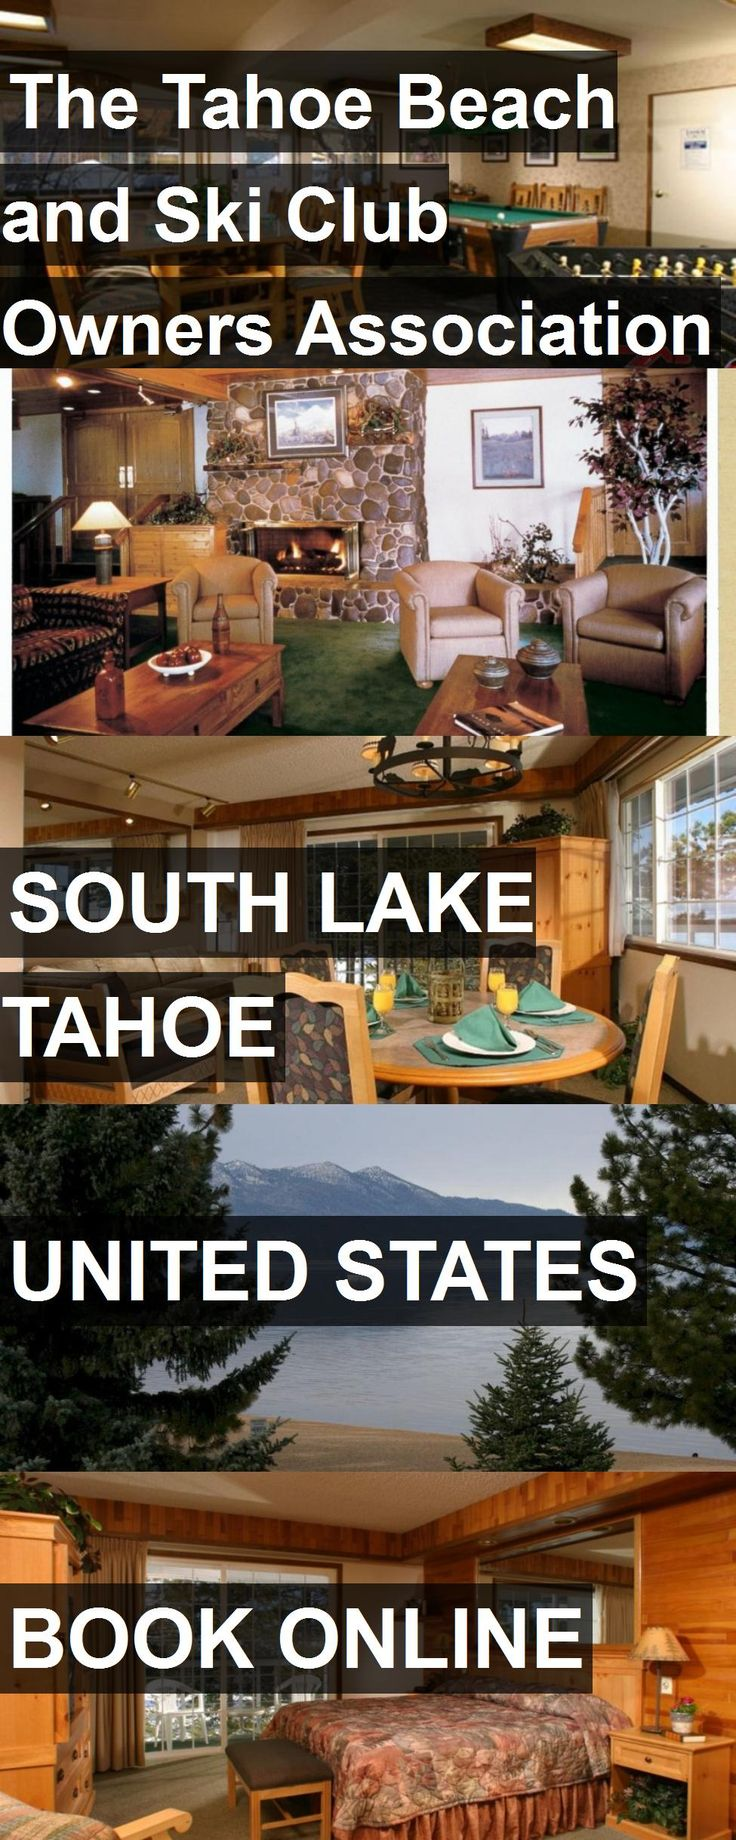 Hotel The Tahoe Beach and Ski Club Owners Association in South Lake Tahoe, United States. For more information, photos, reviews and best prices please follow the link. #UnitedStates #SouthLakeTahoe #TheTahoeBeachandSkiClubOwnersAssociation #hotel #travel #vacation